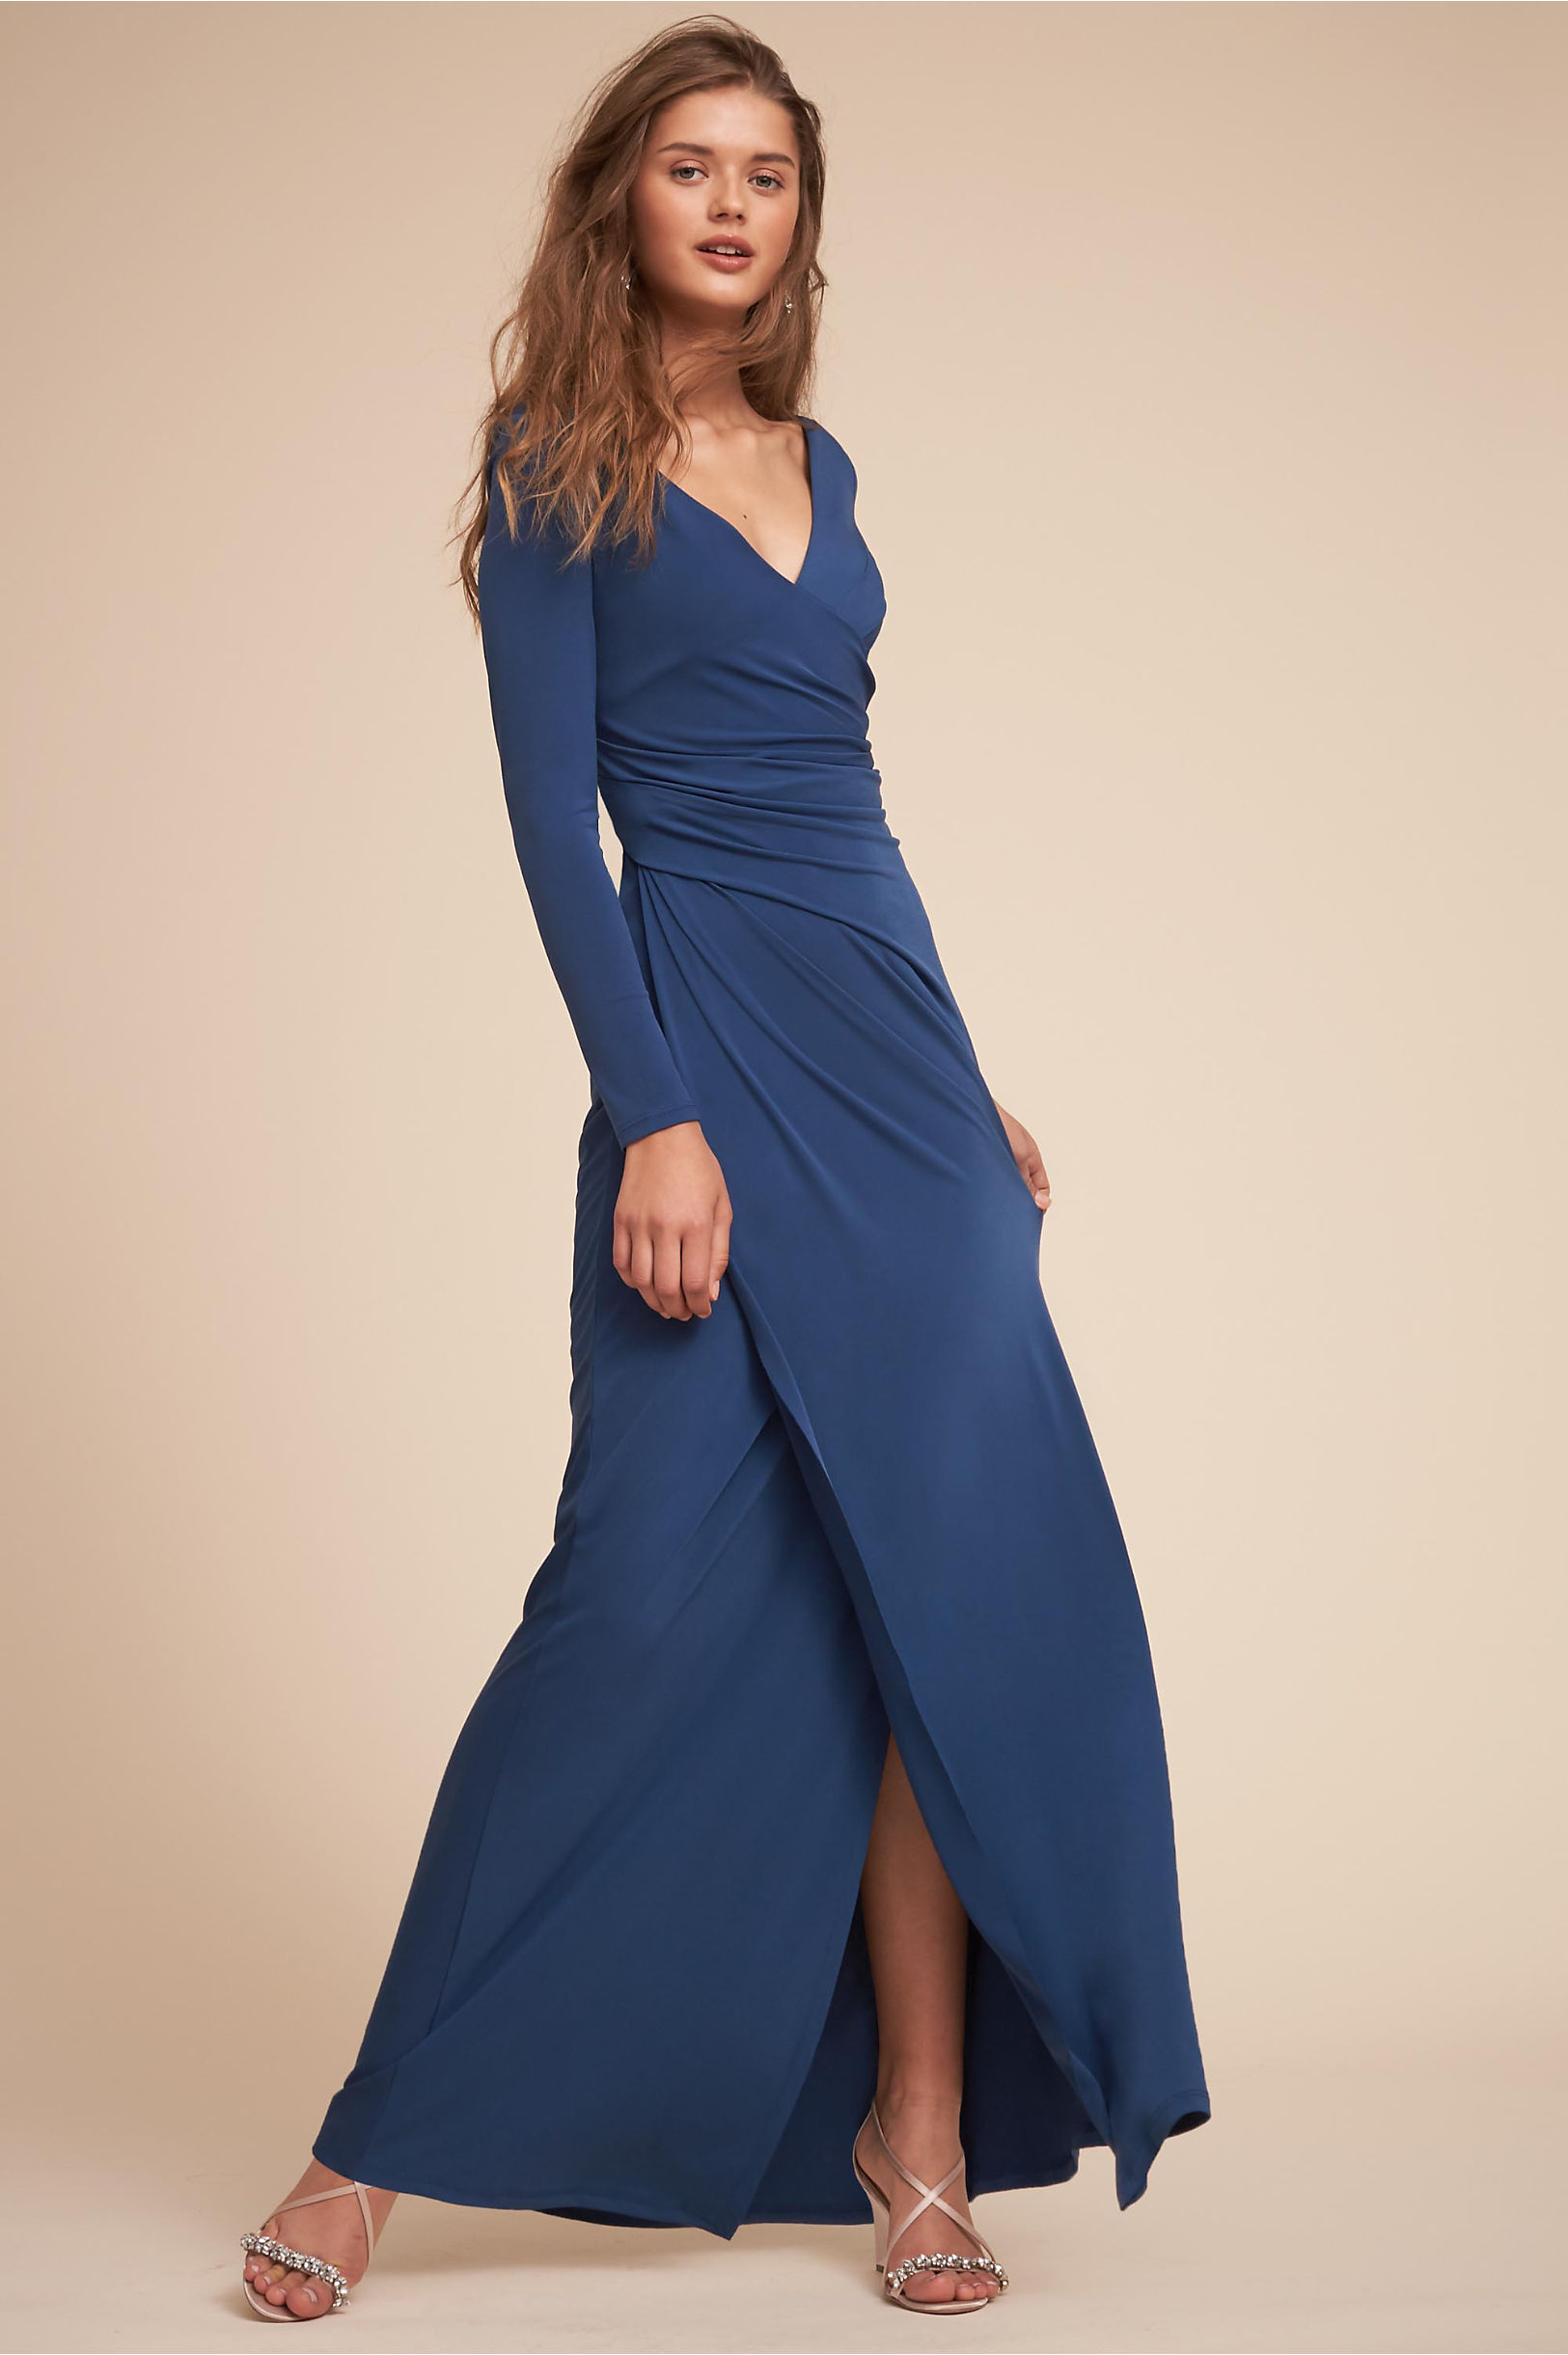 long dresses for wedding guest photo - 1